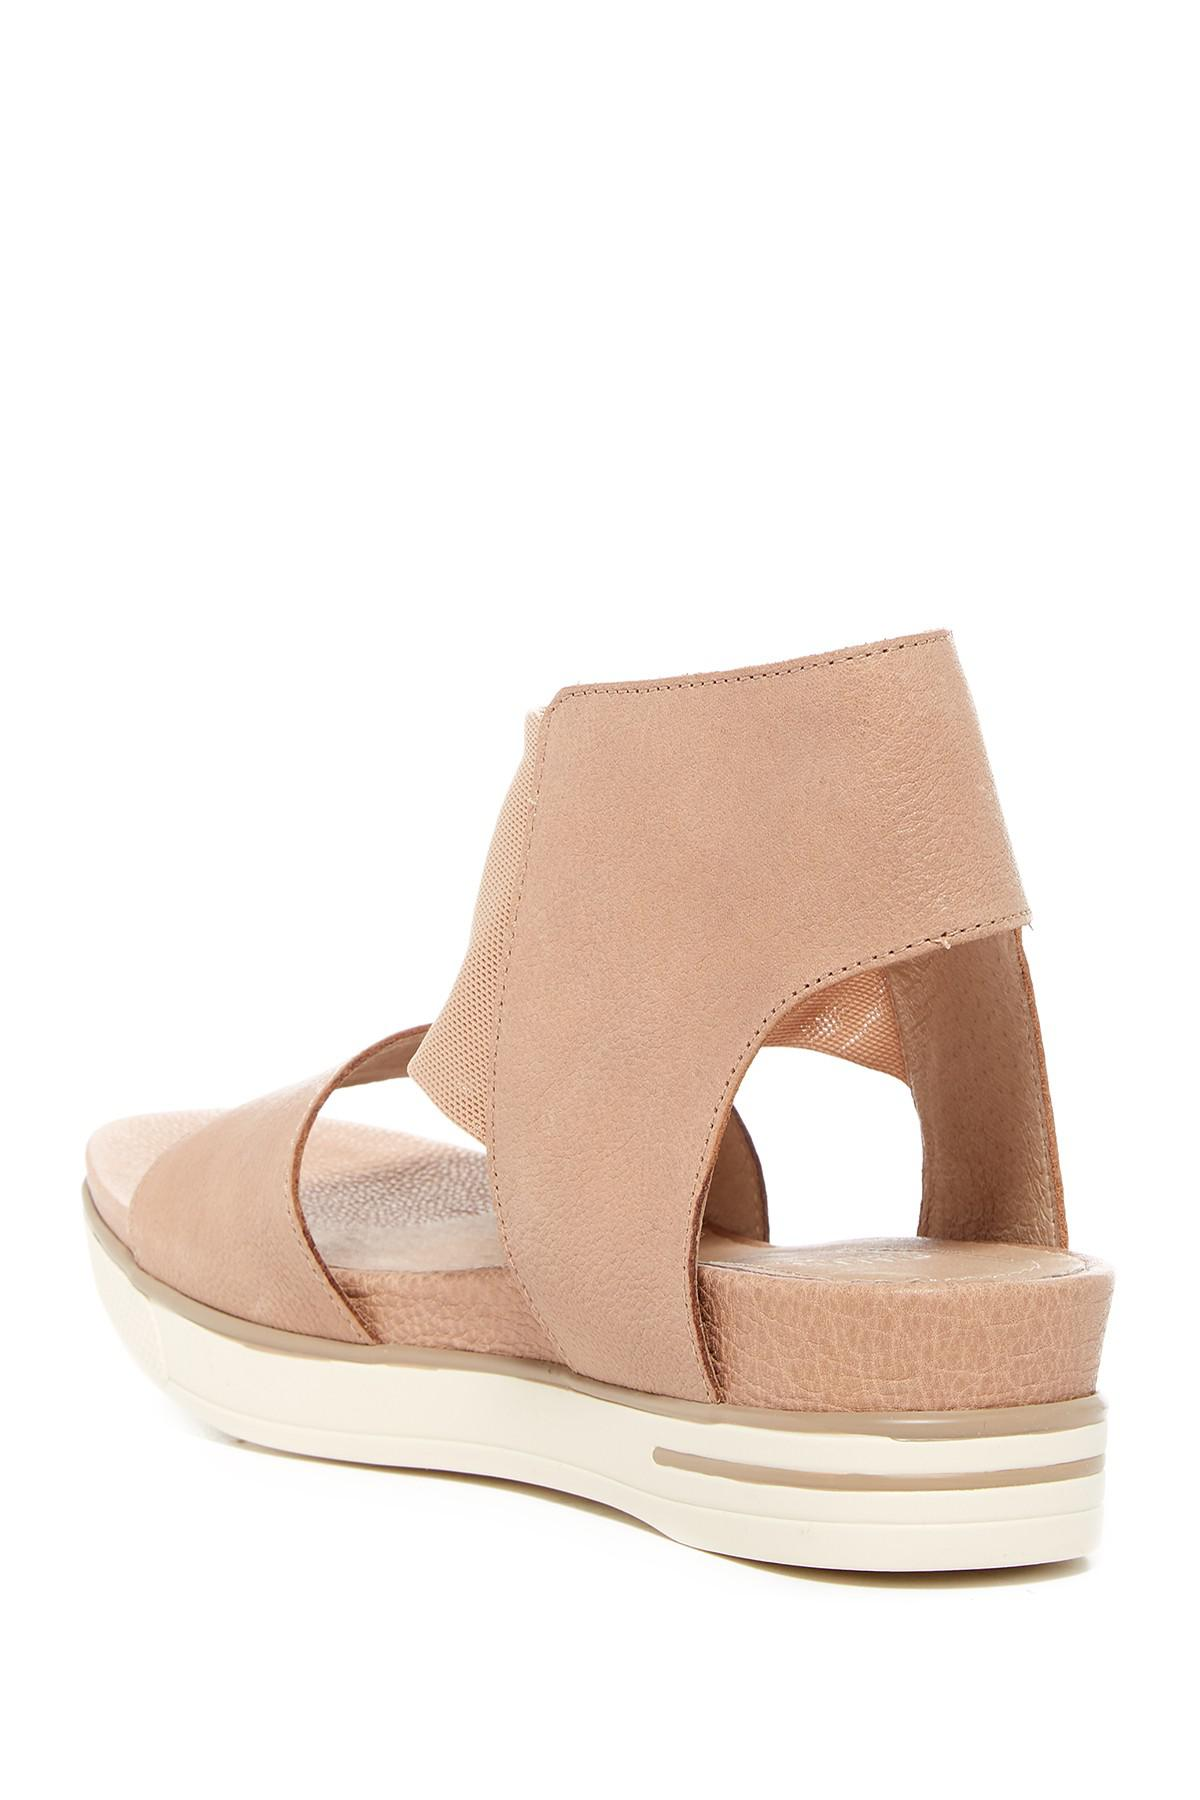 3251797fbda Gallery. Previously sold at  Nordstrom Rack · Women s Eileen Fisher Platform  ...